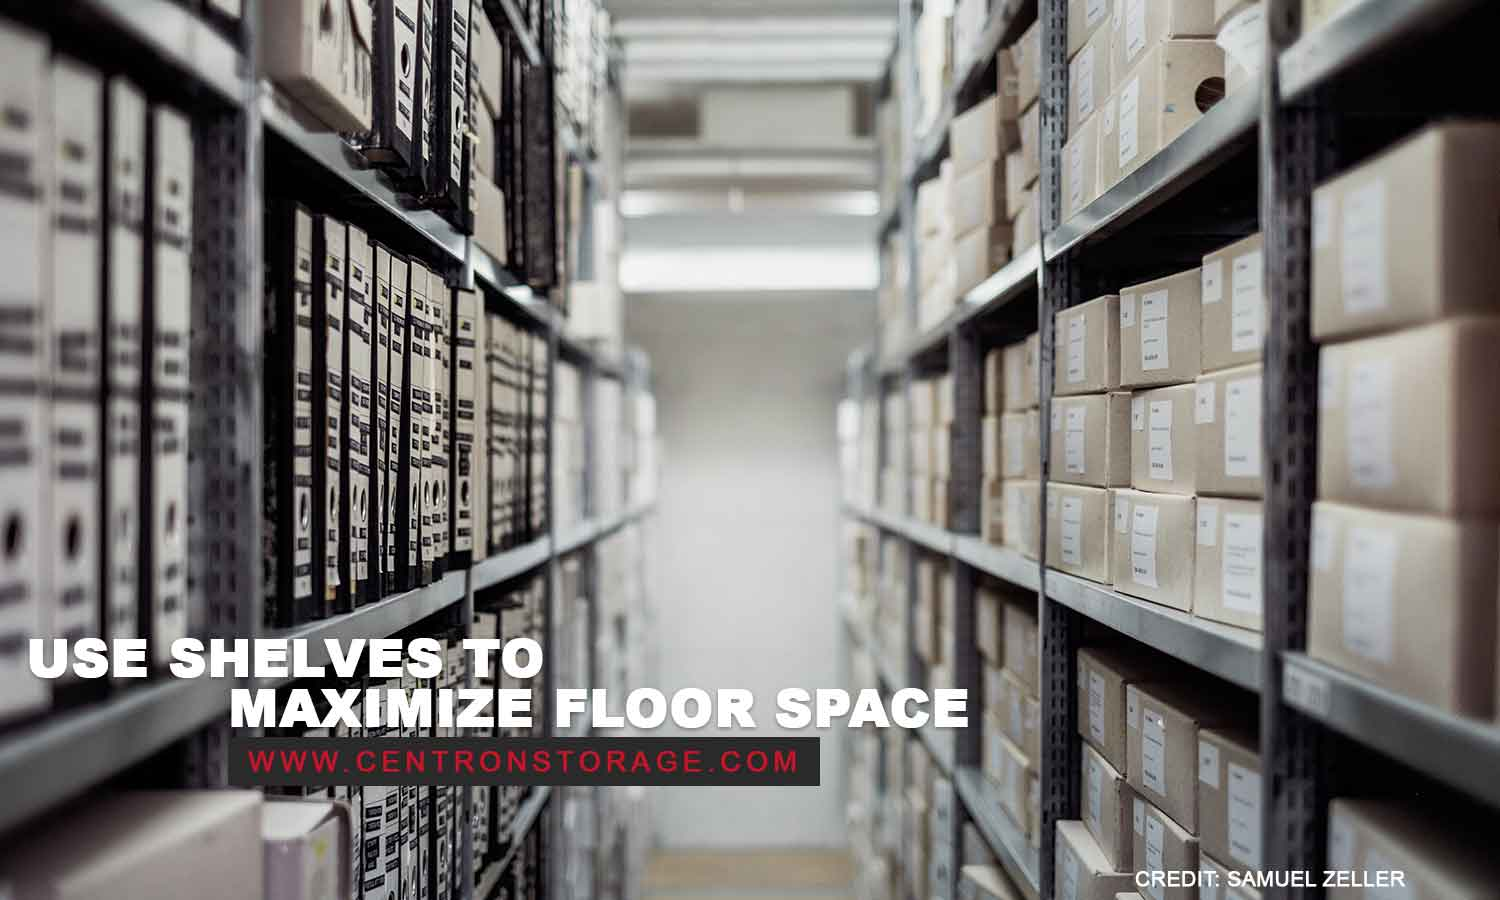 Use shelves to maximize floor space